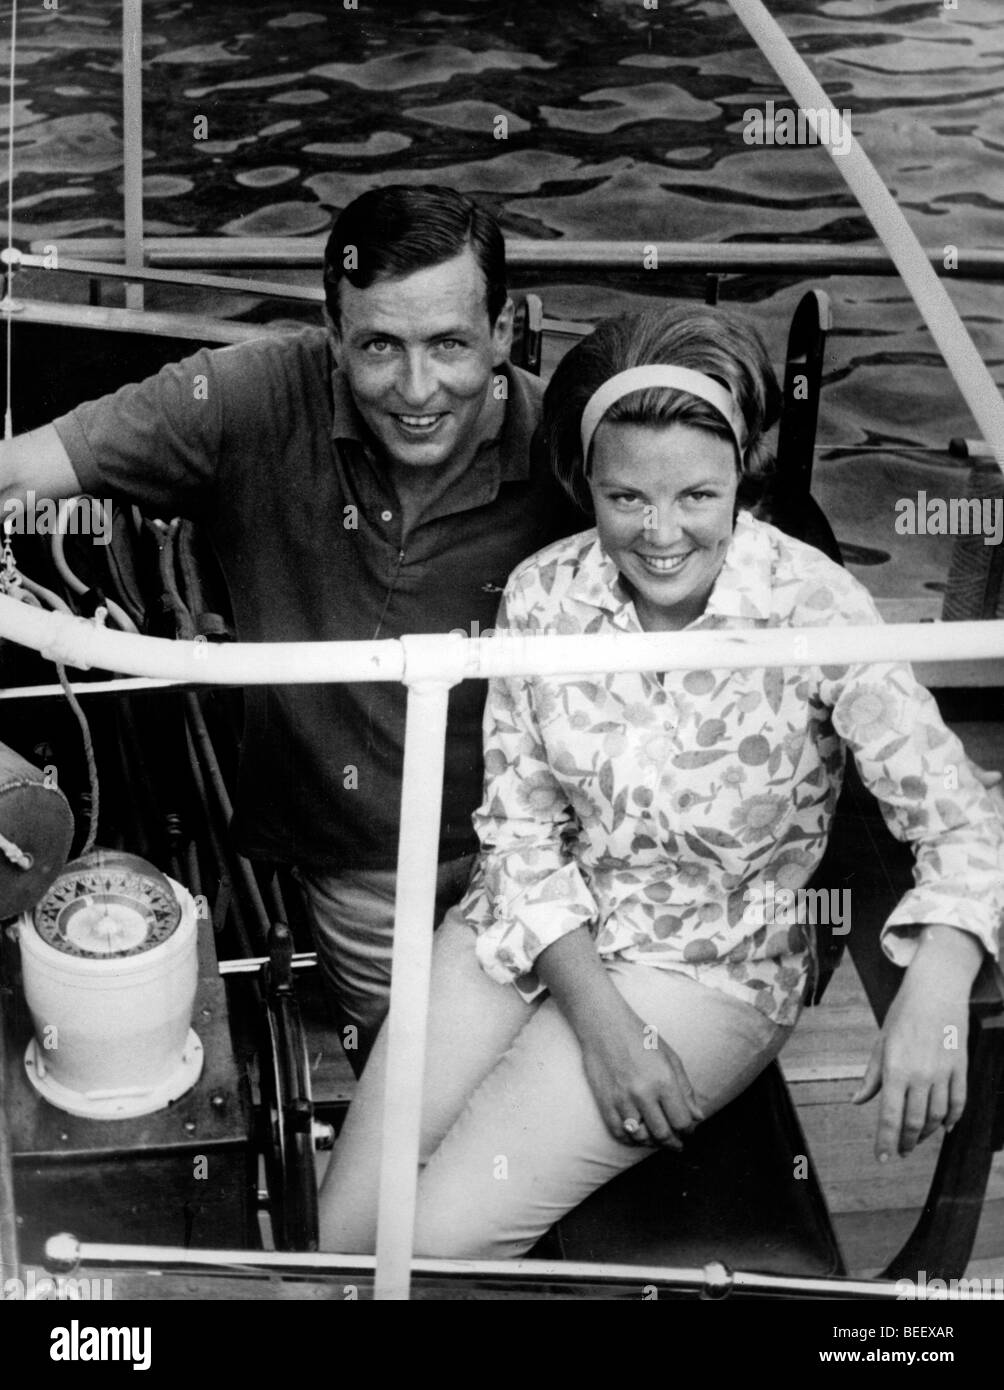 Queen Beatrix of the Netherlands and her husband Claus von Amsberg. Stock Photo